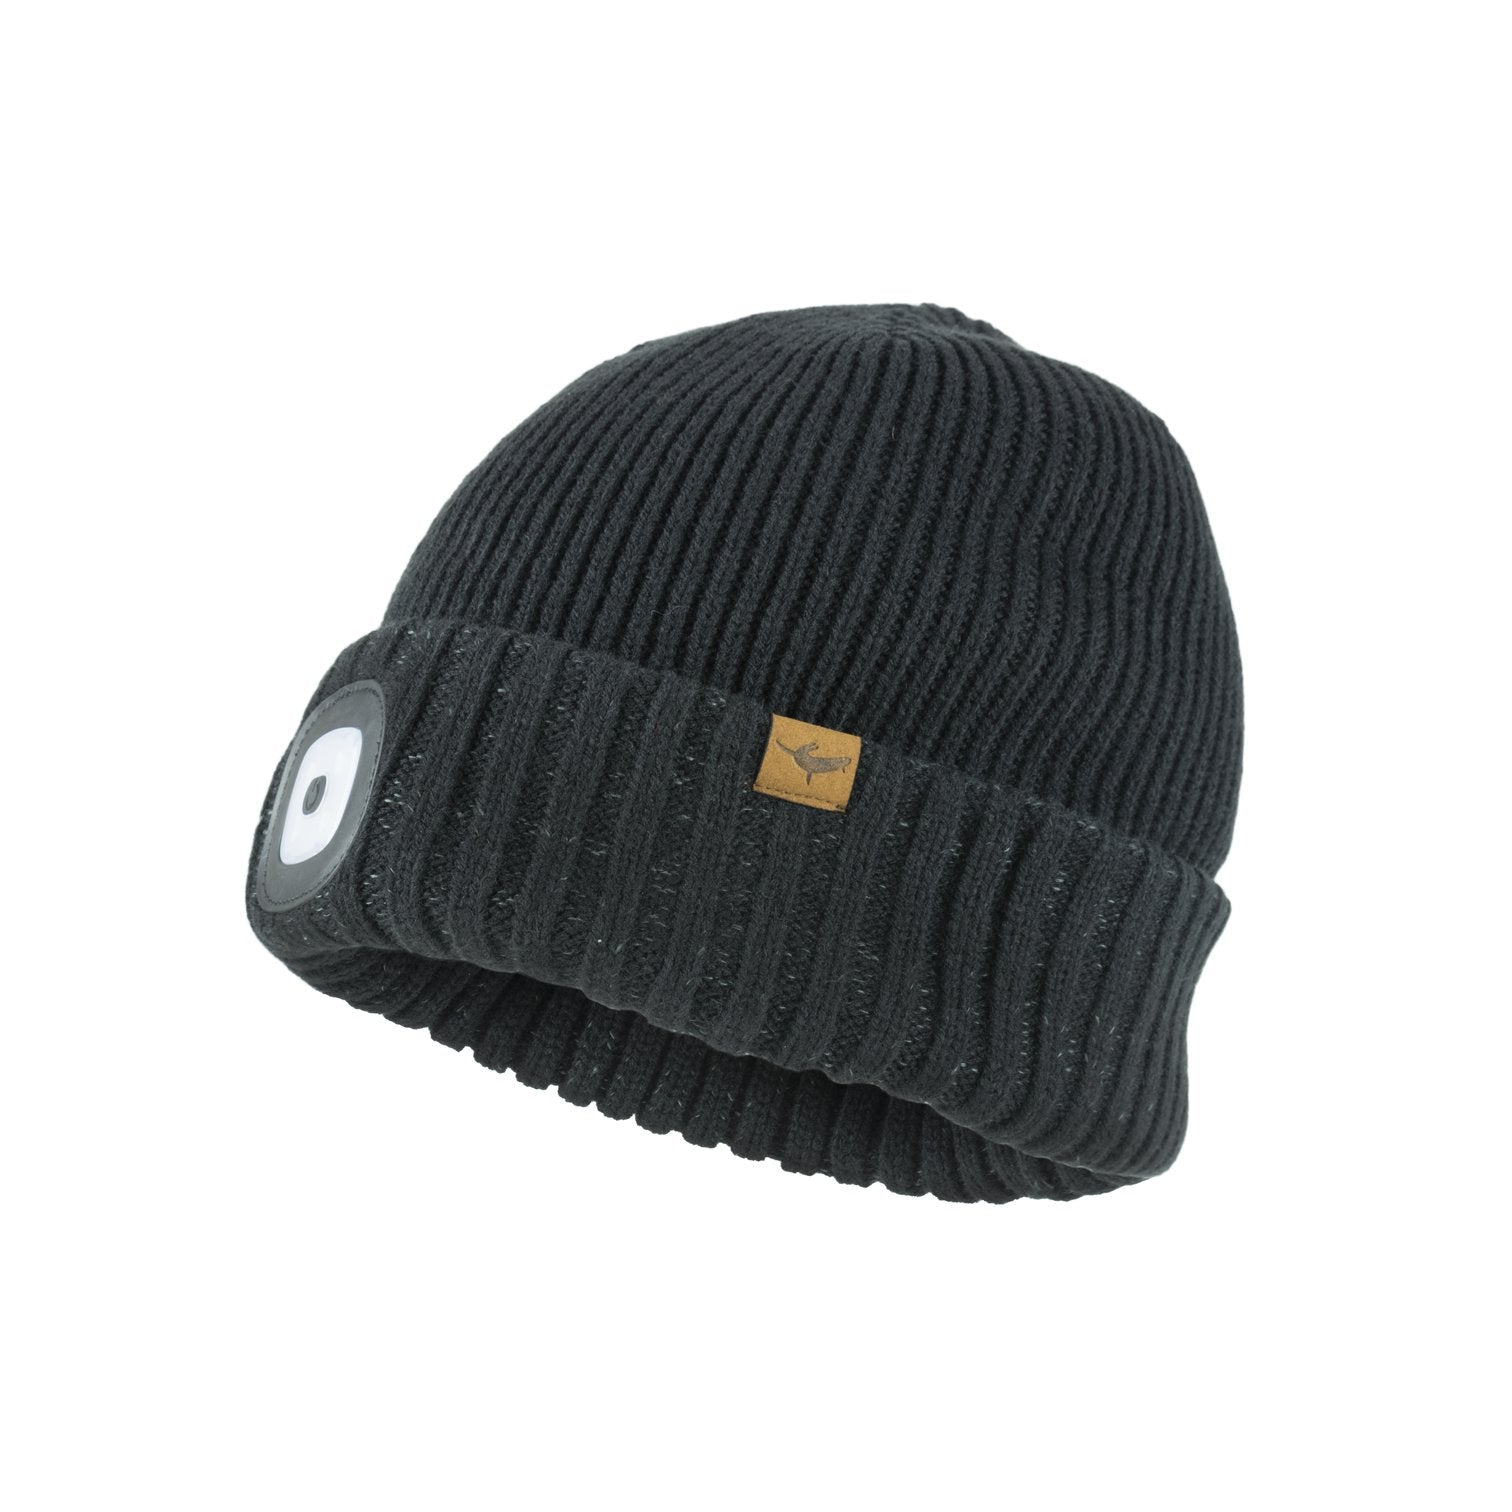 waterproof-cold-weather-led-roll-cuff-beanie-hat